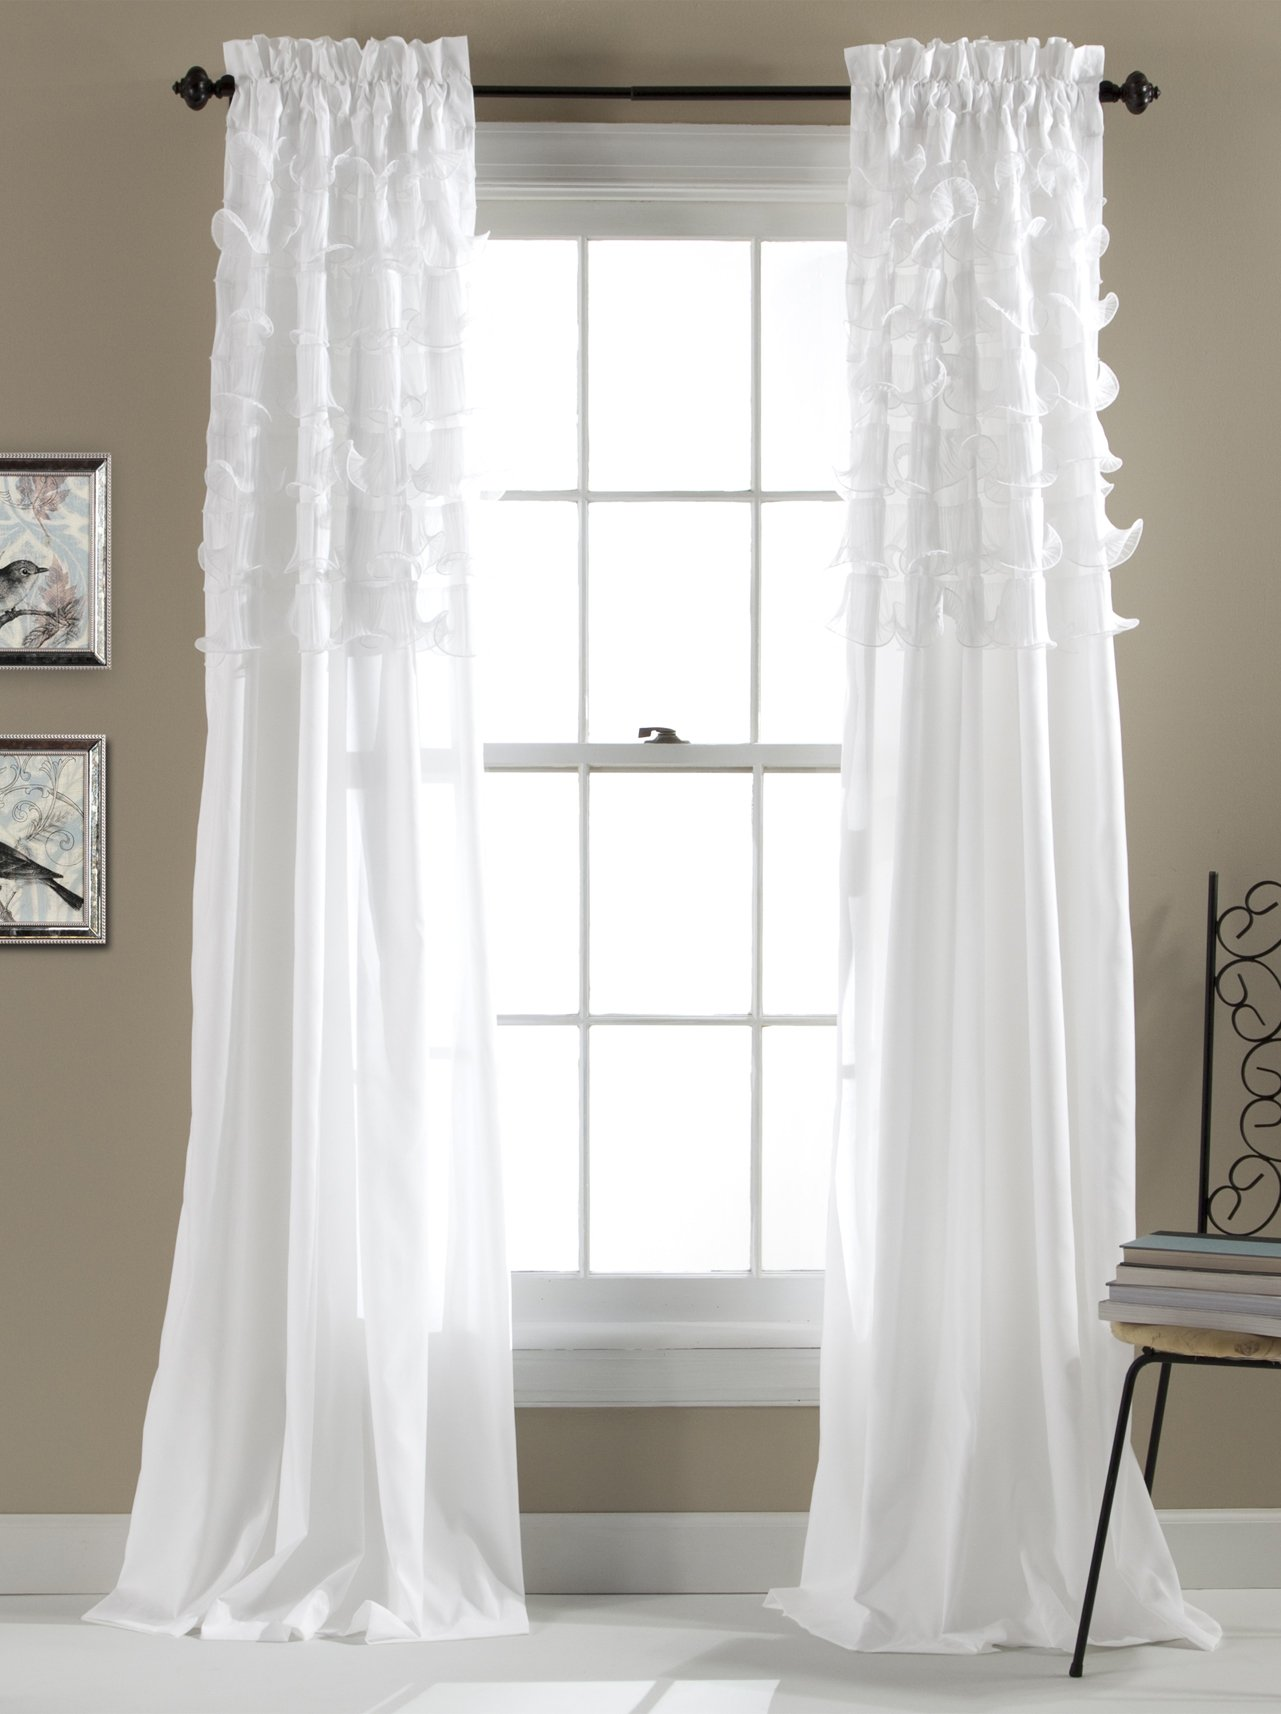 Lush Decor Avery Curtains Ruffled Shabby Chic Style Window Panel Set for Living, Dining Room, Bedroom (Pair), 84 by 54-Inch, White - Lush Décor Avery window panel set is the ideal curtain for your shabby chic, modern or farmhouse decor Delicate, elegant window curtain panels with textured, ruffled layers at the top These curtains add a dreamy touch for your bedroom, living room or dining room - living-room-soft-furnishings, living-room, draperies-curtains-shades - 71 yDLk4NbL -